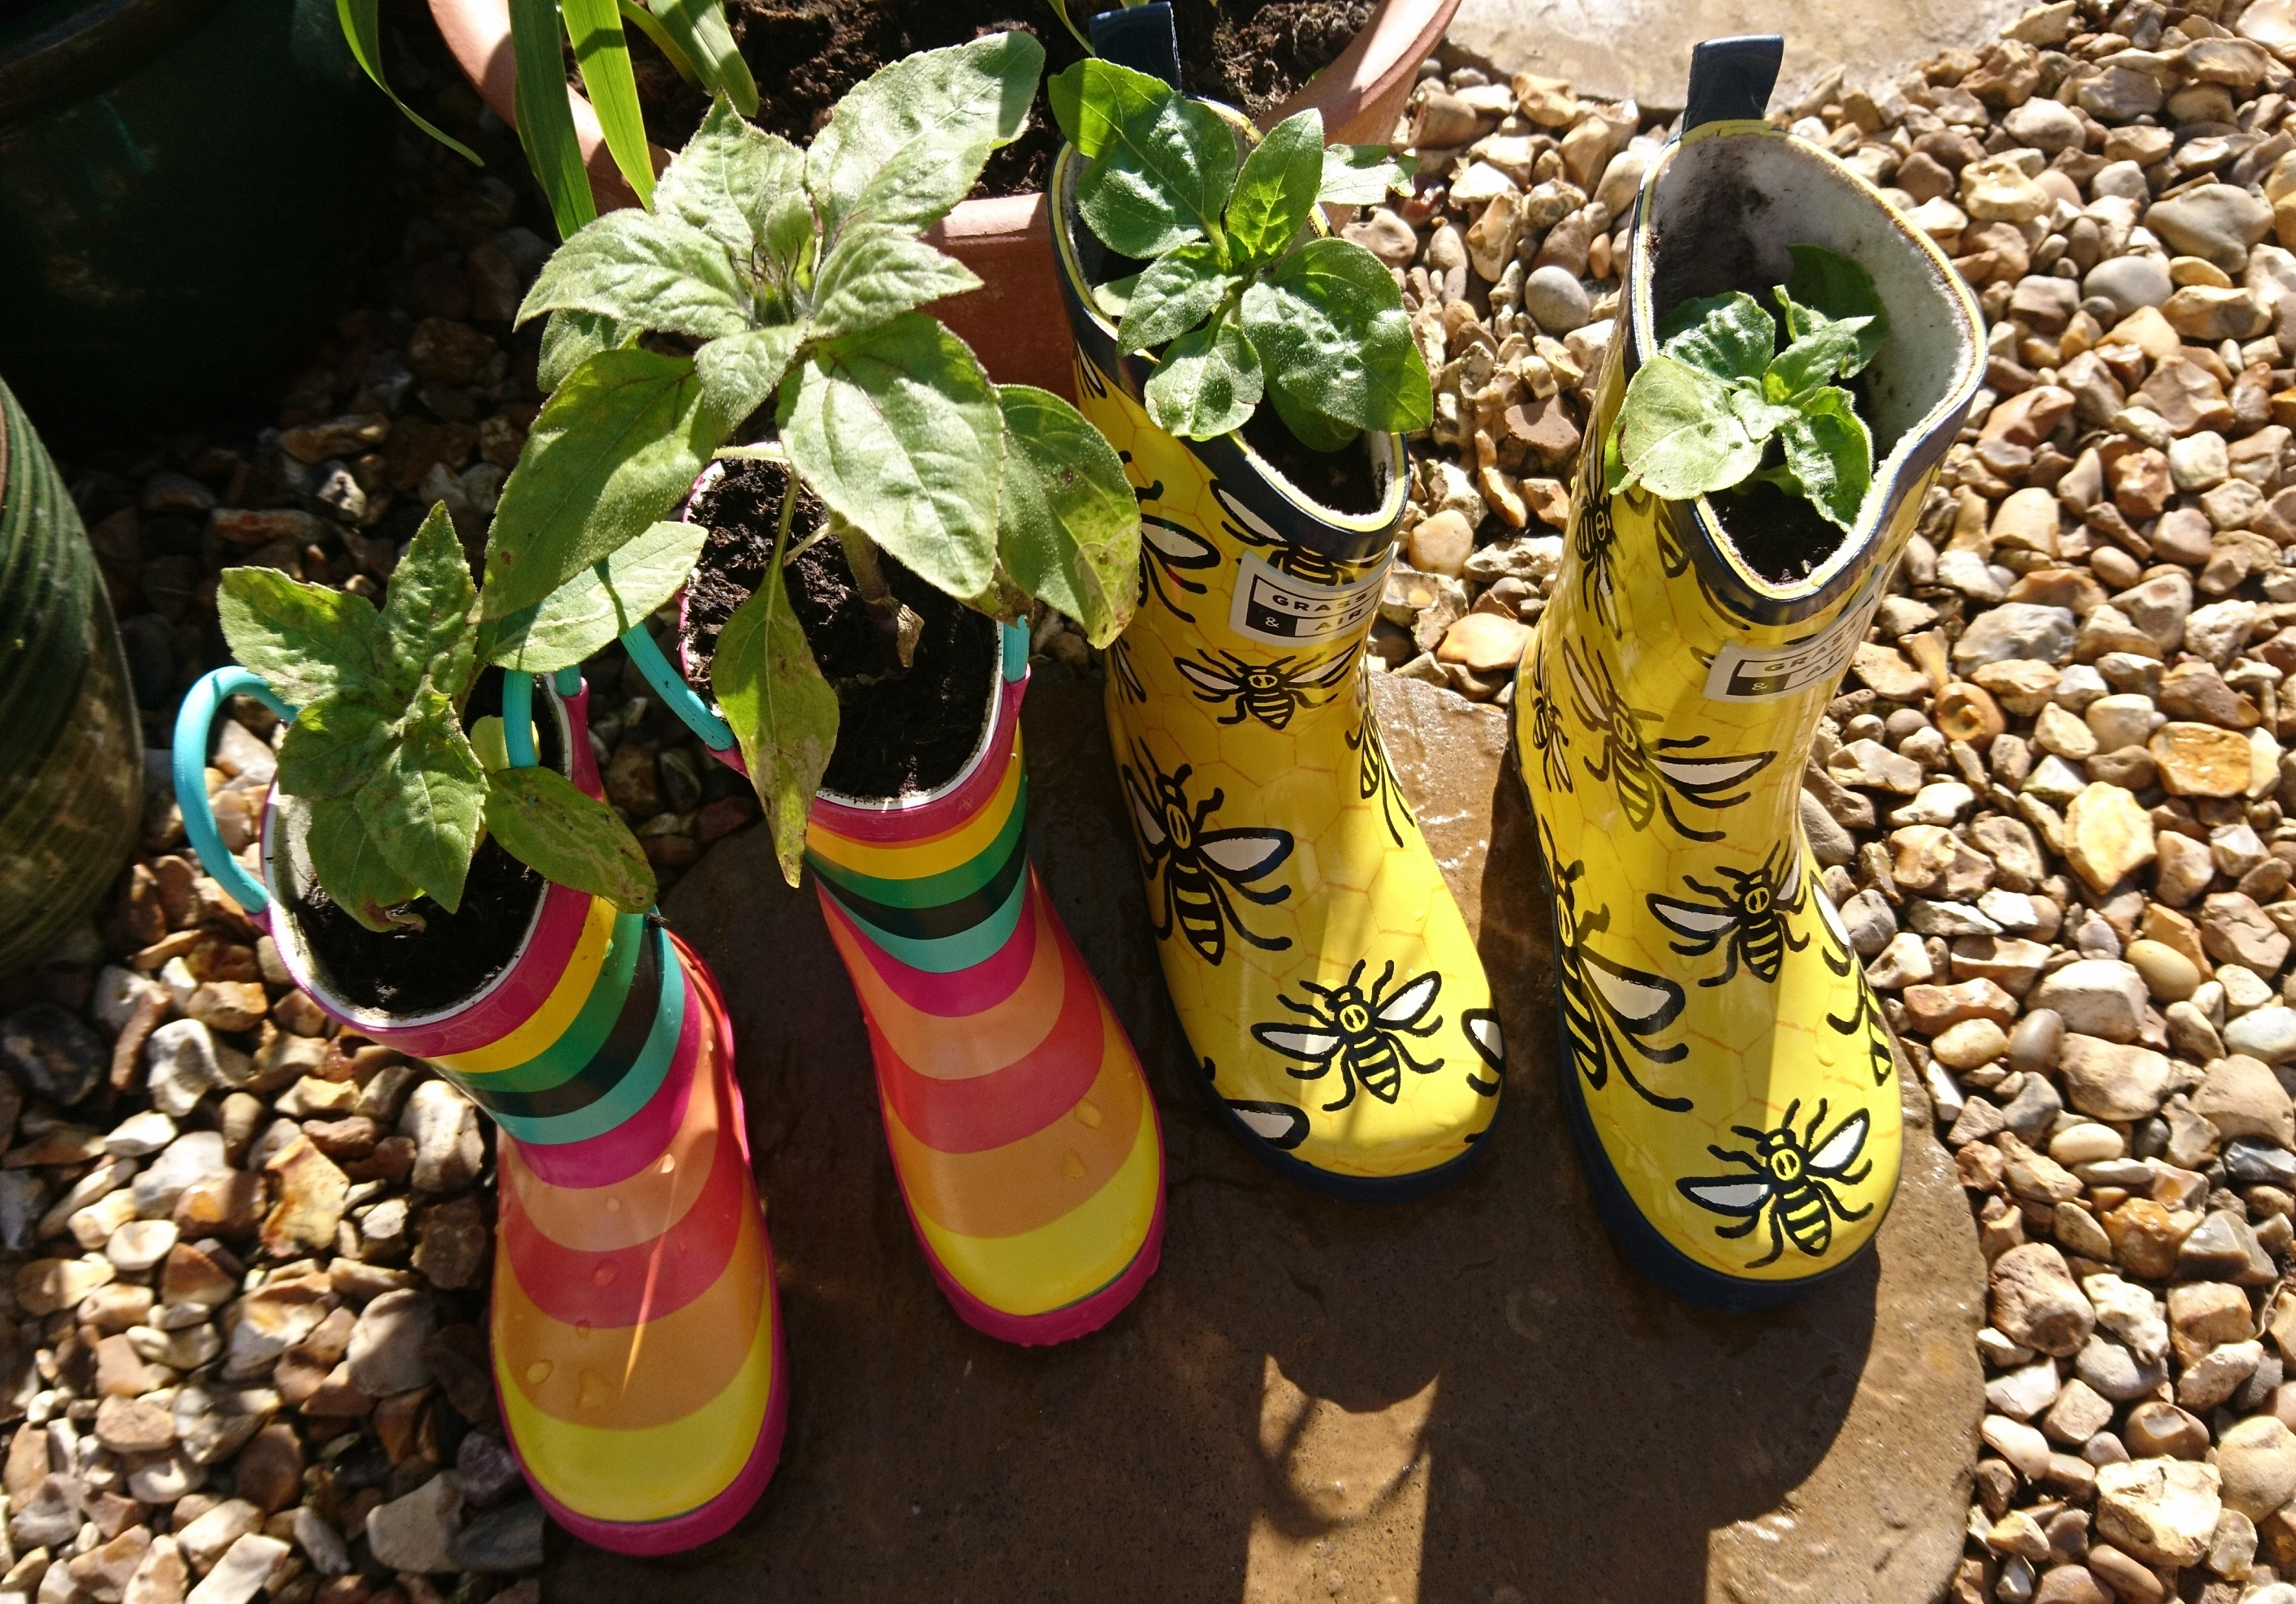 Dwarf sunflowers growing in wellington boots.